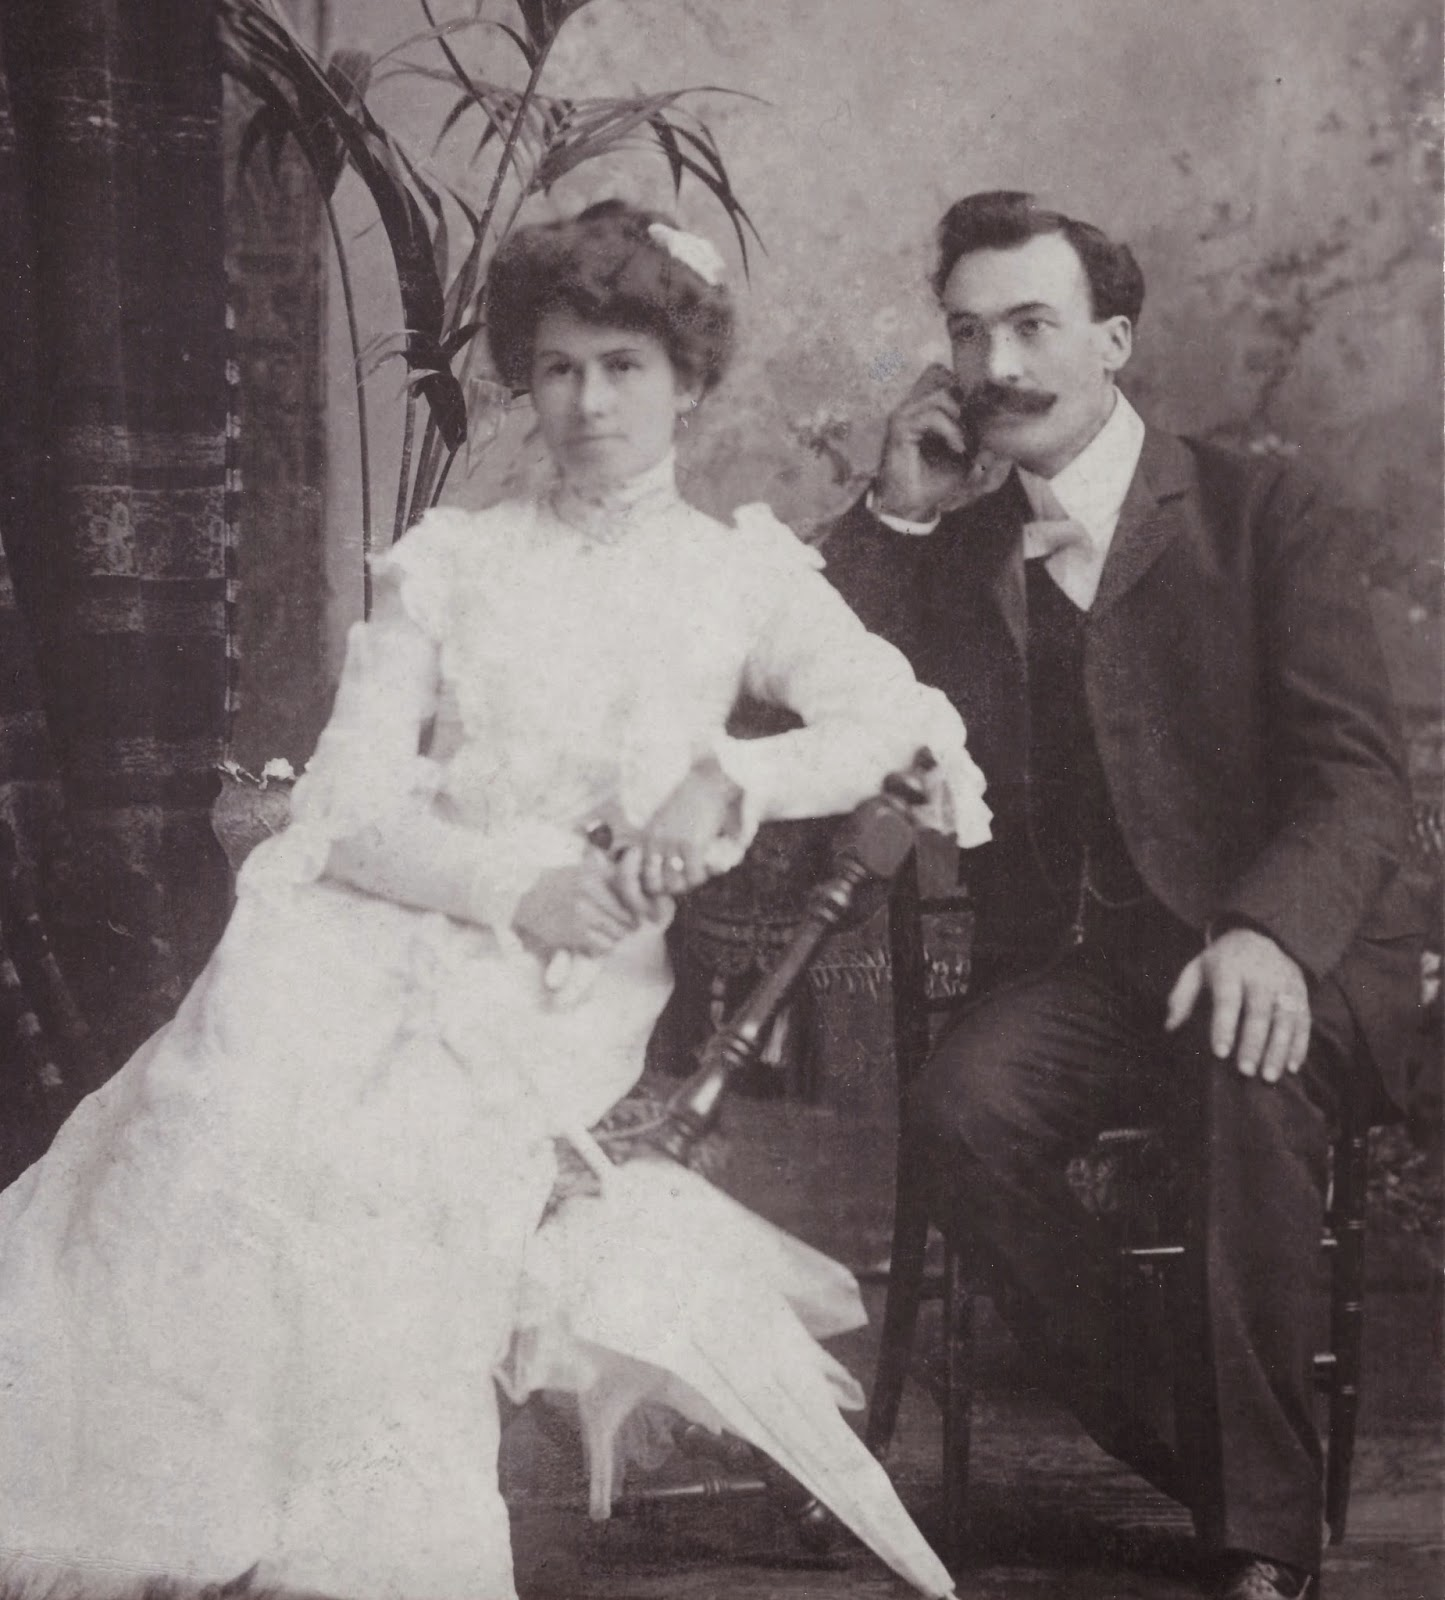 Photo of Mary and William Larkin, the builders and first occupants of the future Whispers pub. William Larkin was also responsible for the construction of several brick homes in the Westboro area as well, according to his grandchildren.